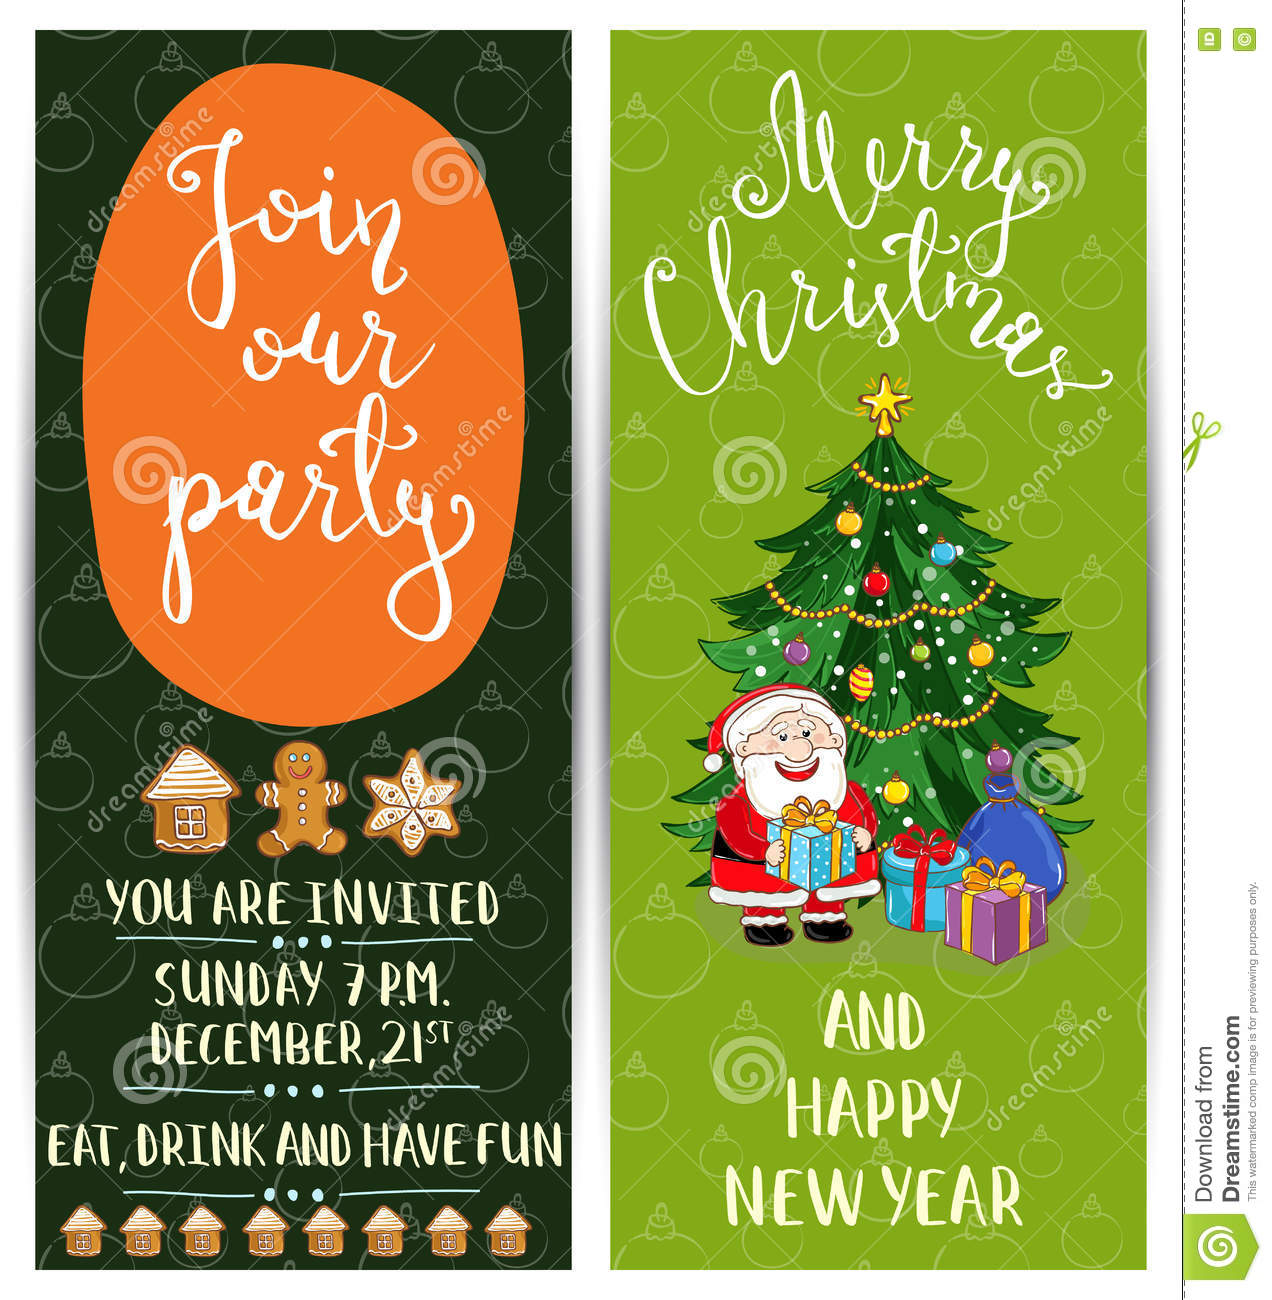 Christmas Party Time Images.Personal Offer To Join Corporate Christmas Party Stock